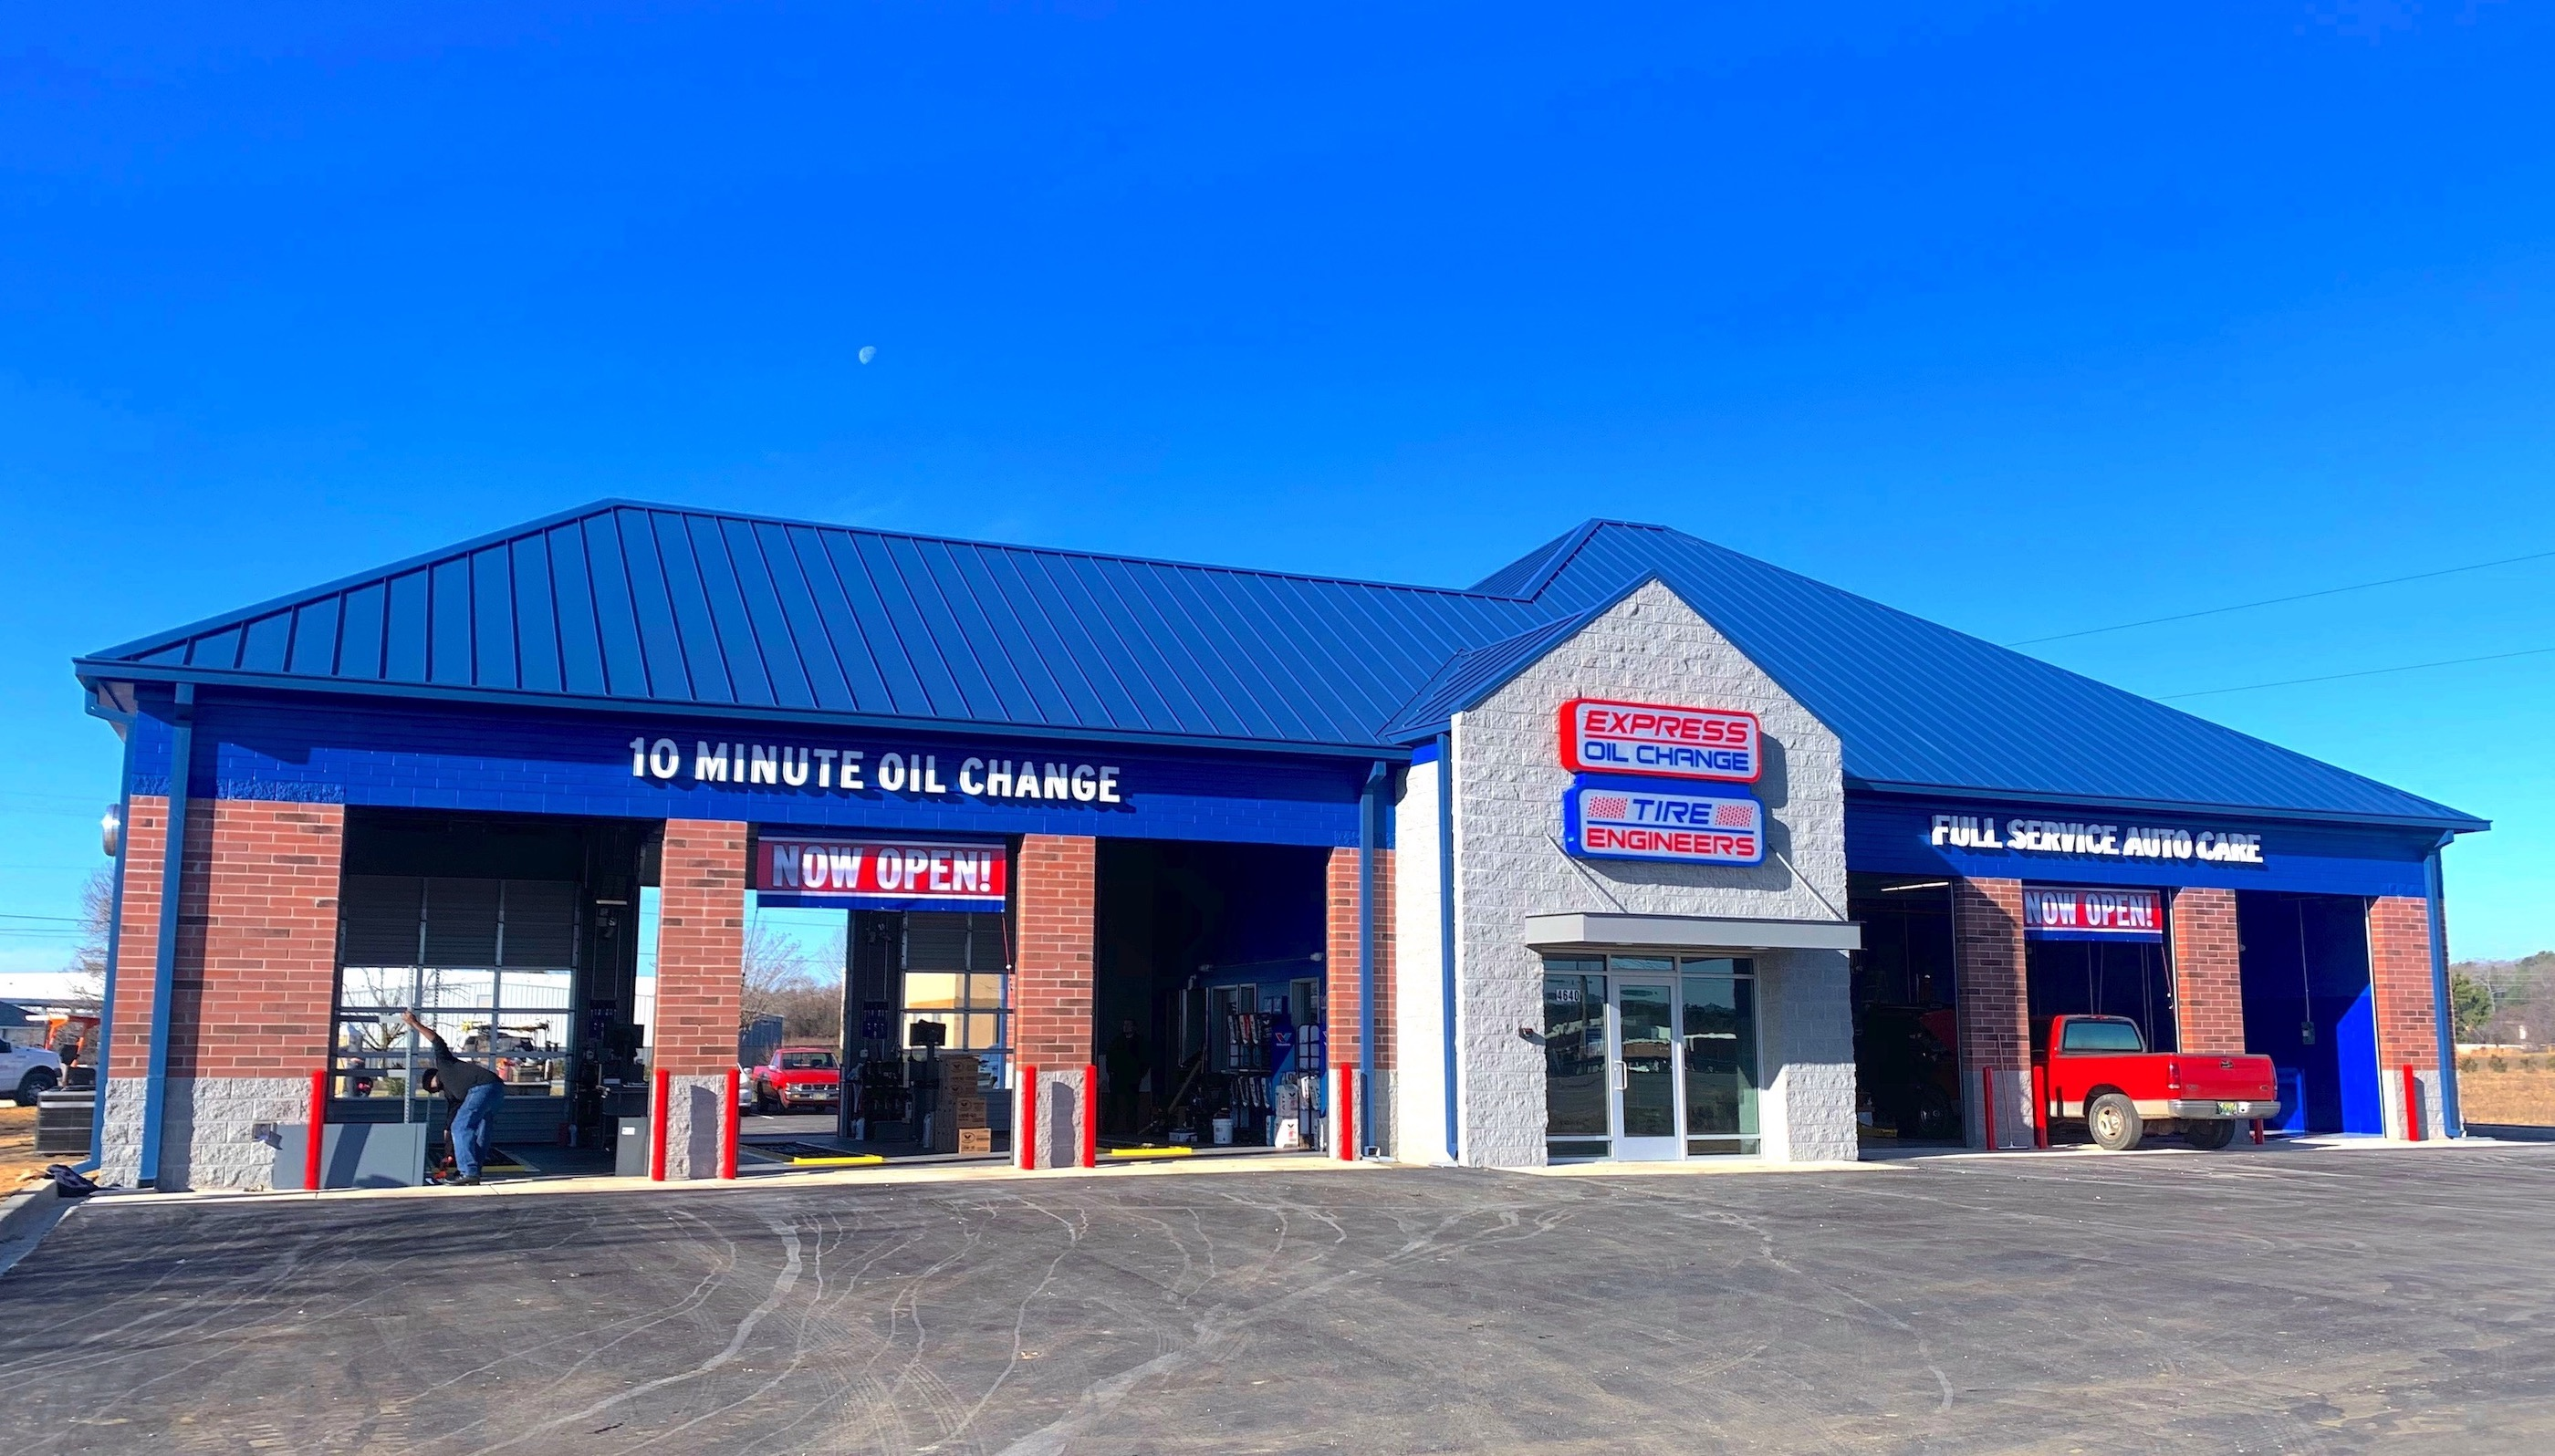 Express Oil Change & Tire Engineers at Calera, AL - Calera Marketplace store